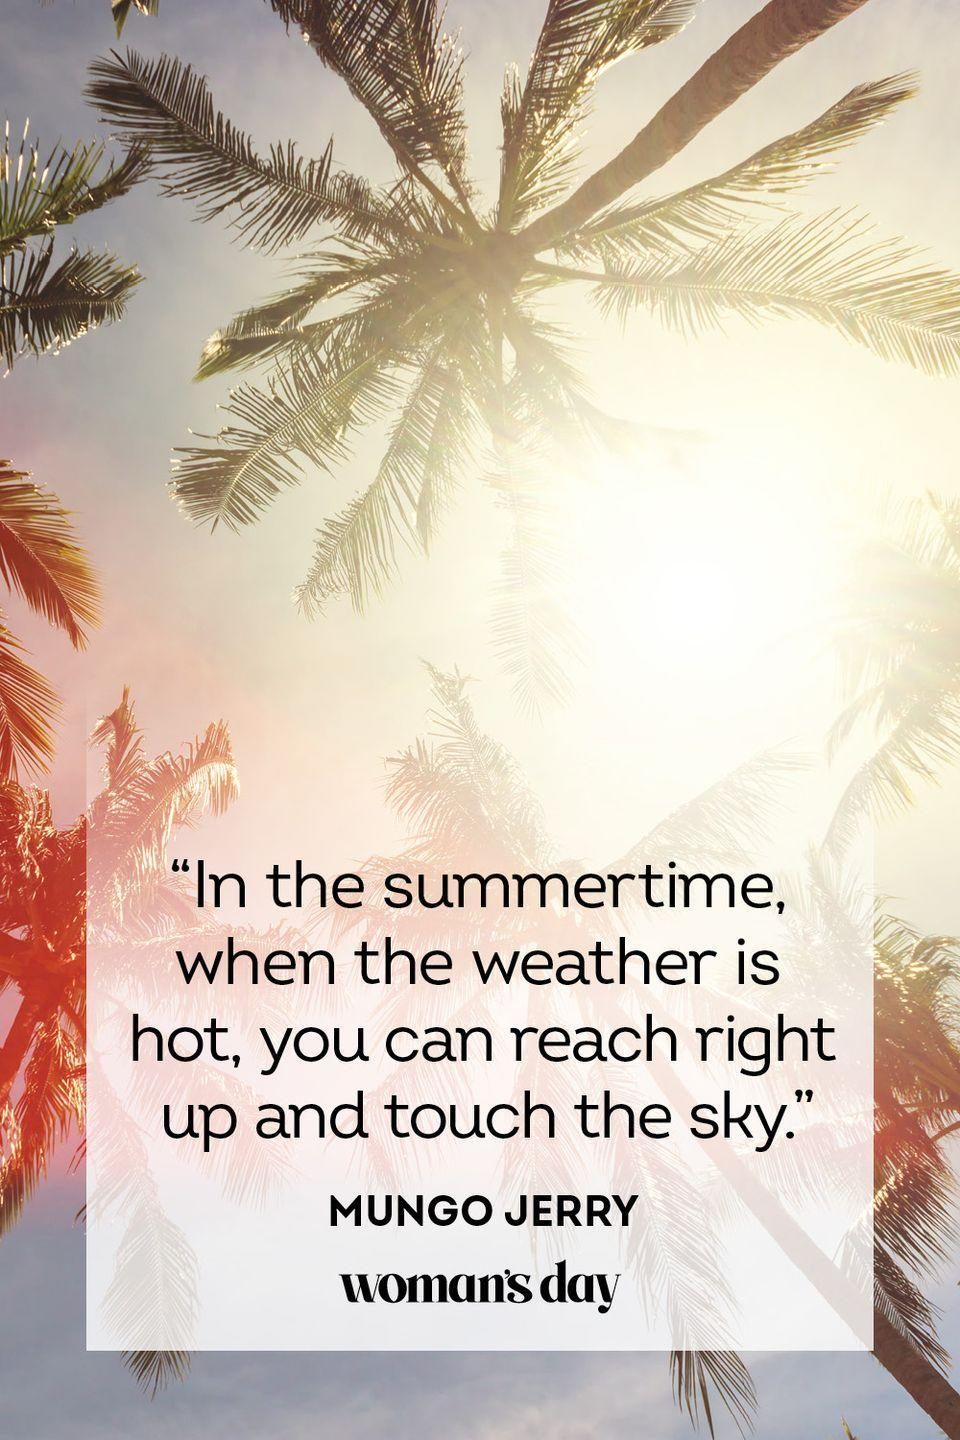 """<p>""""In the summertime, when the weather is hot, you can reach right up and touch the sky.""""</p>"""